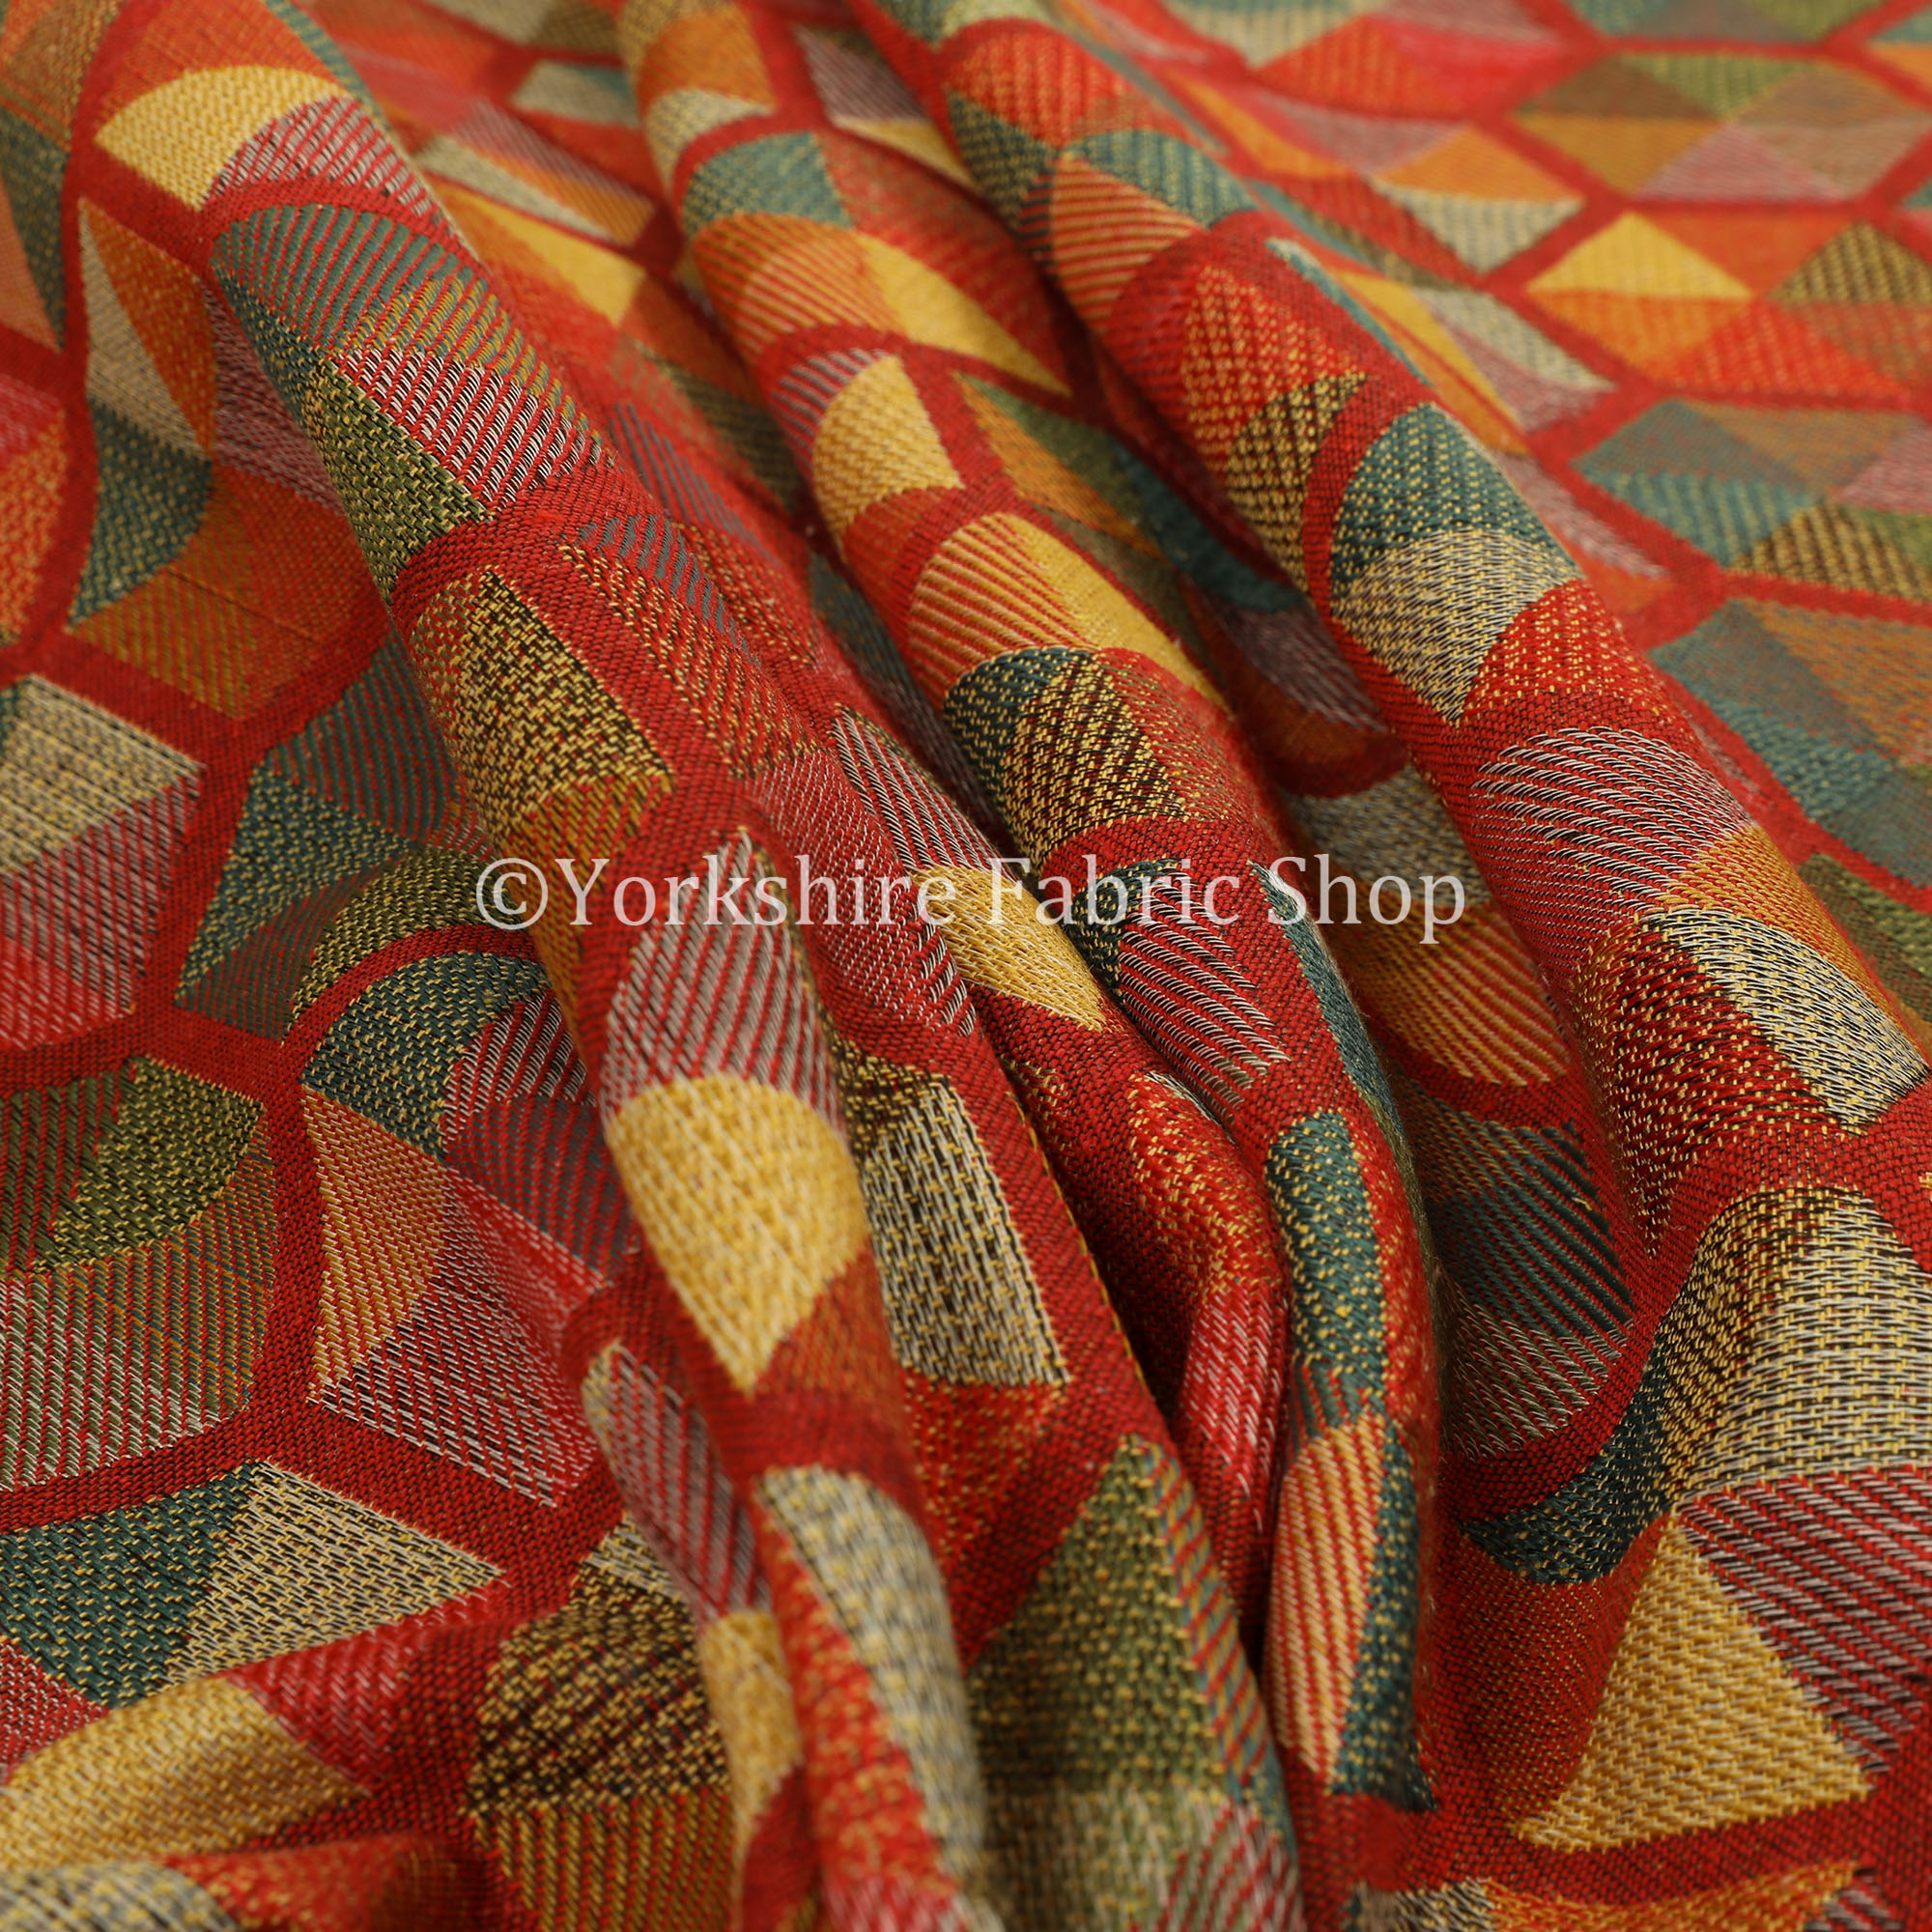 Yorkshire Fabric Shop | Blog | News About Upholstery Fabrics